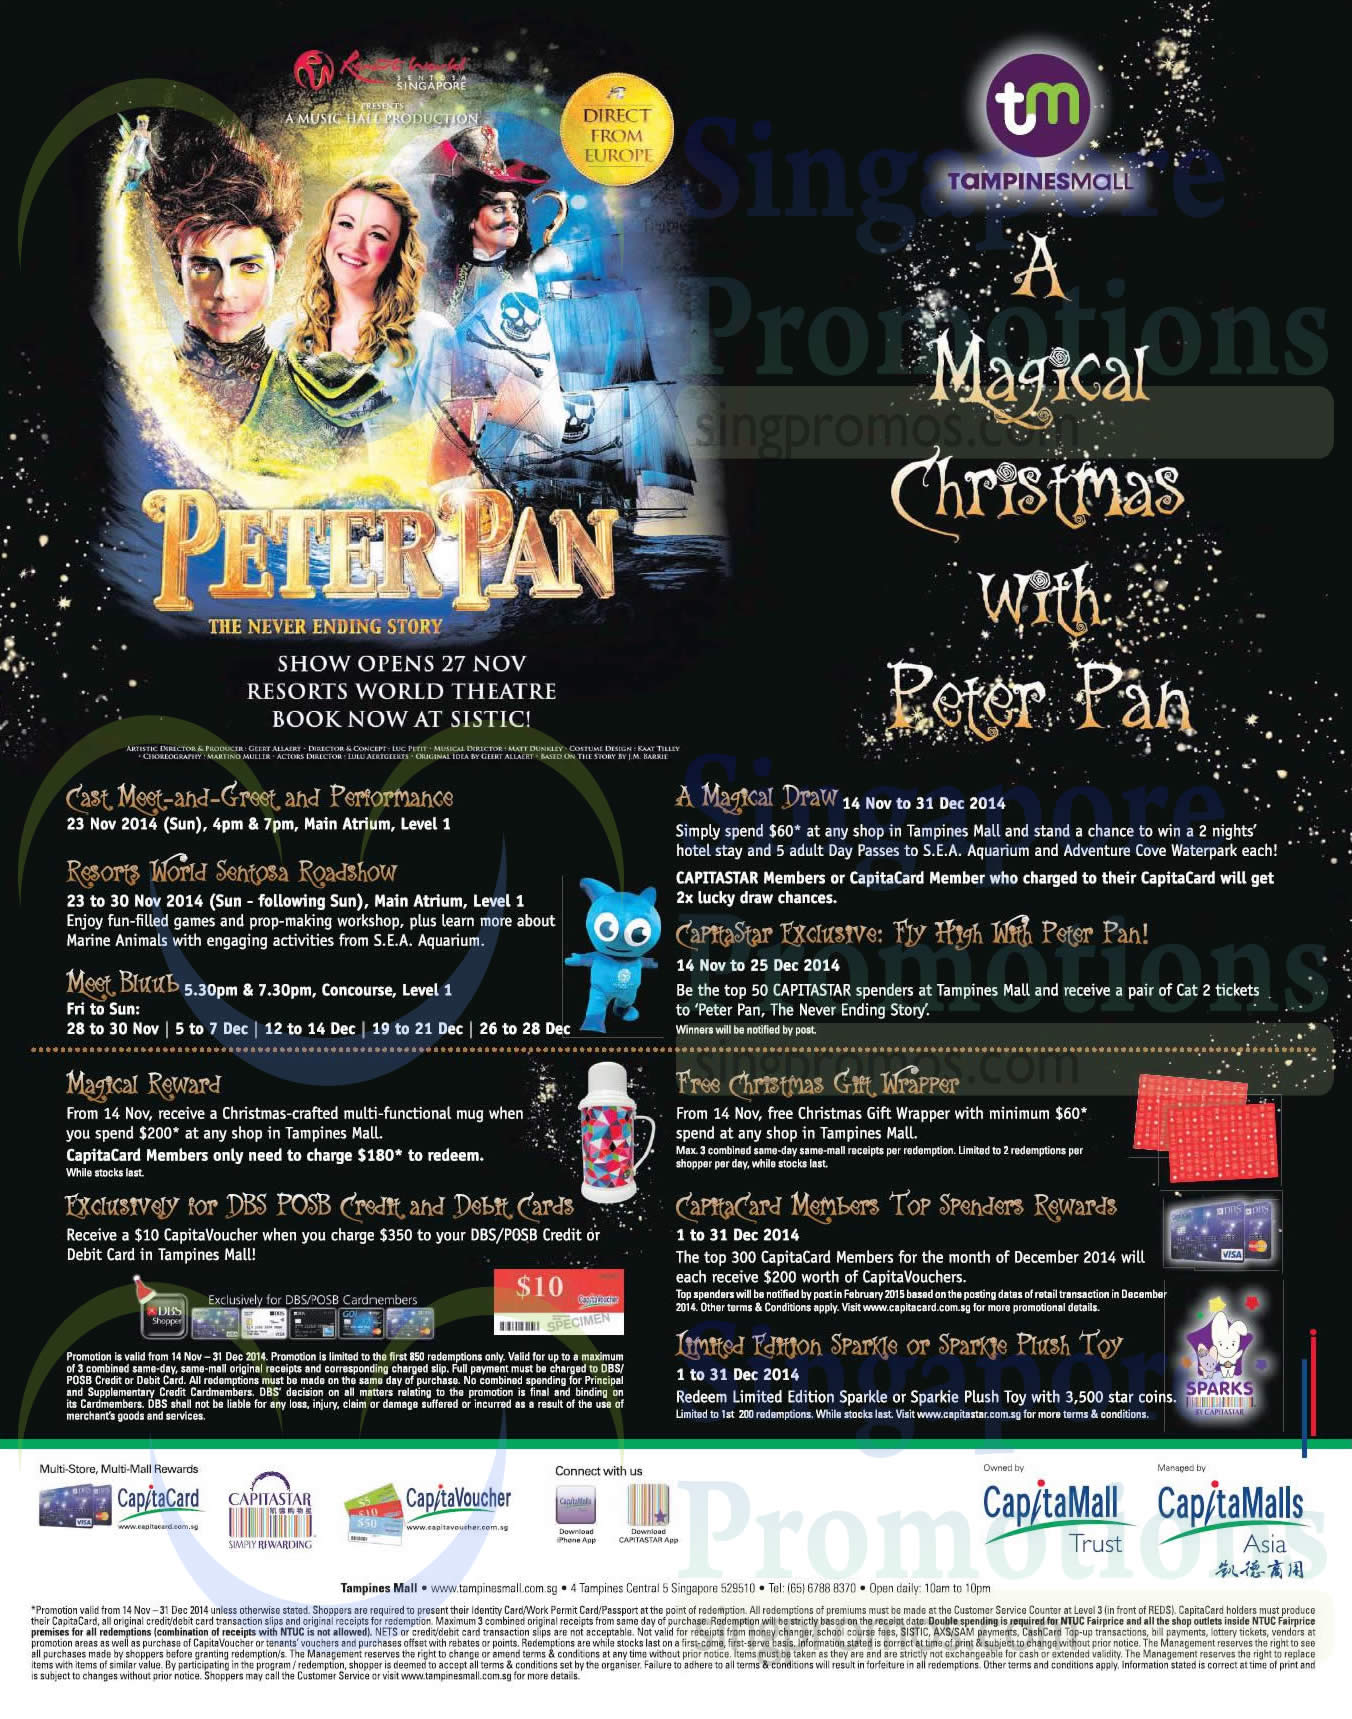 6e1033faabc5e Tampines Mall Magical Christmas with Peter Pan Promotions ...